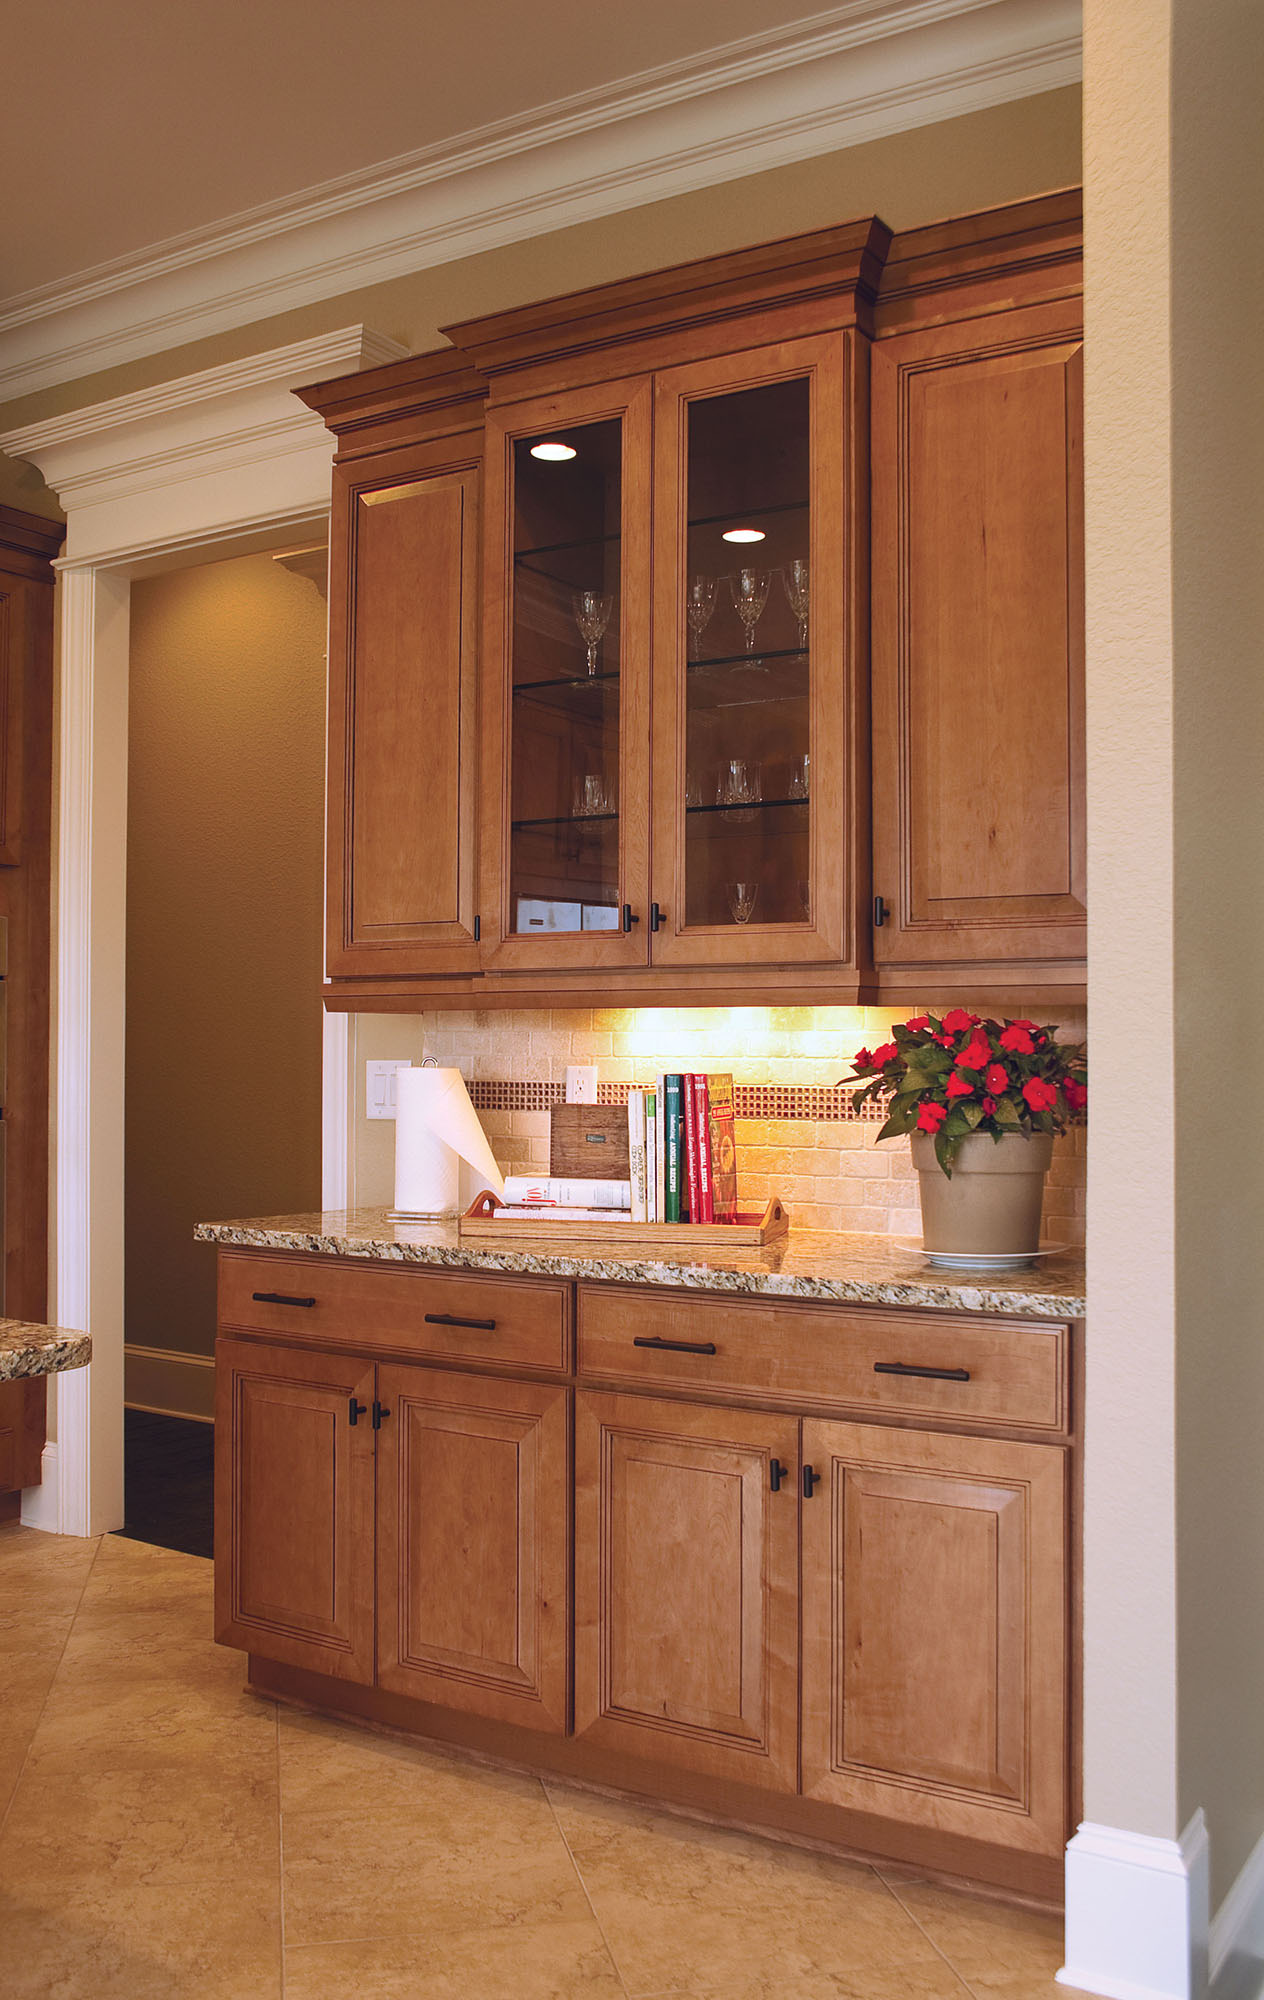 Glass Cabinet Doors Home Depot Inspirational to Wire Mild to A Glass Kitchen Cabinet Doors